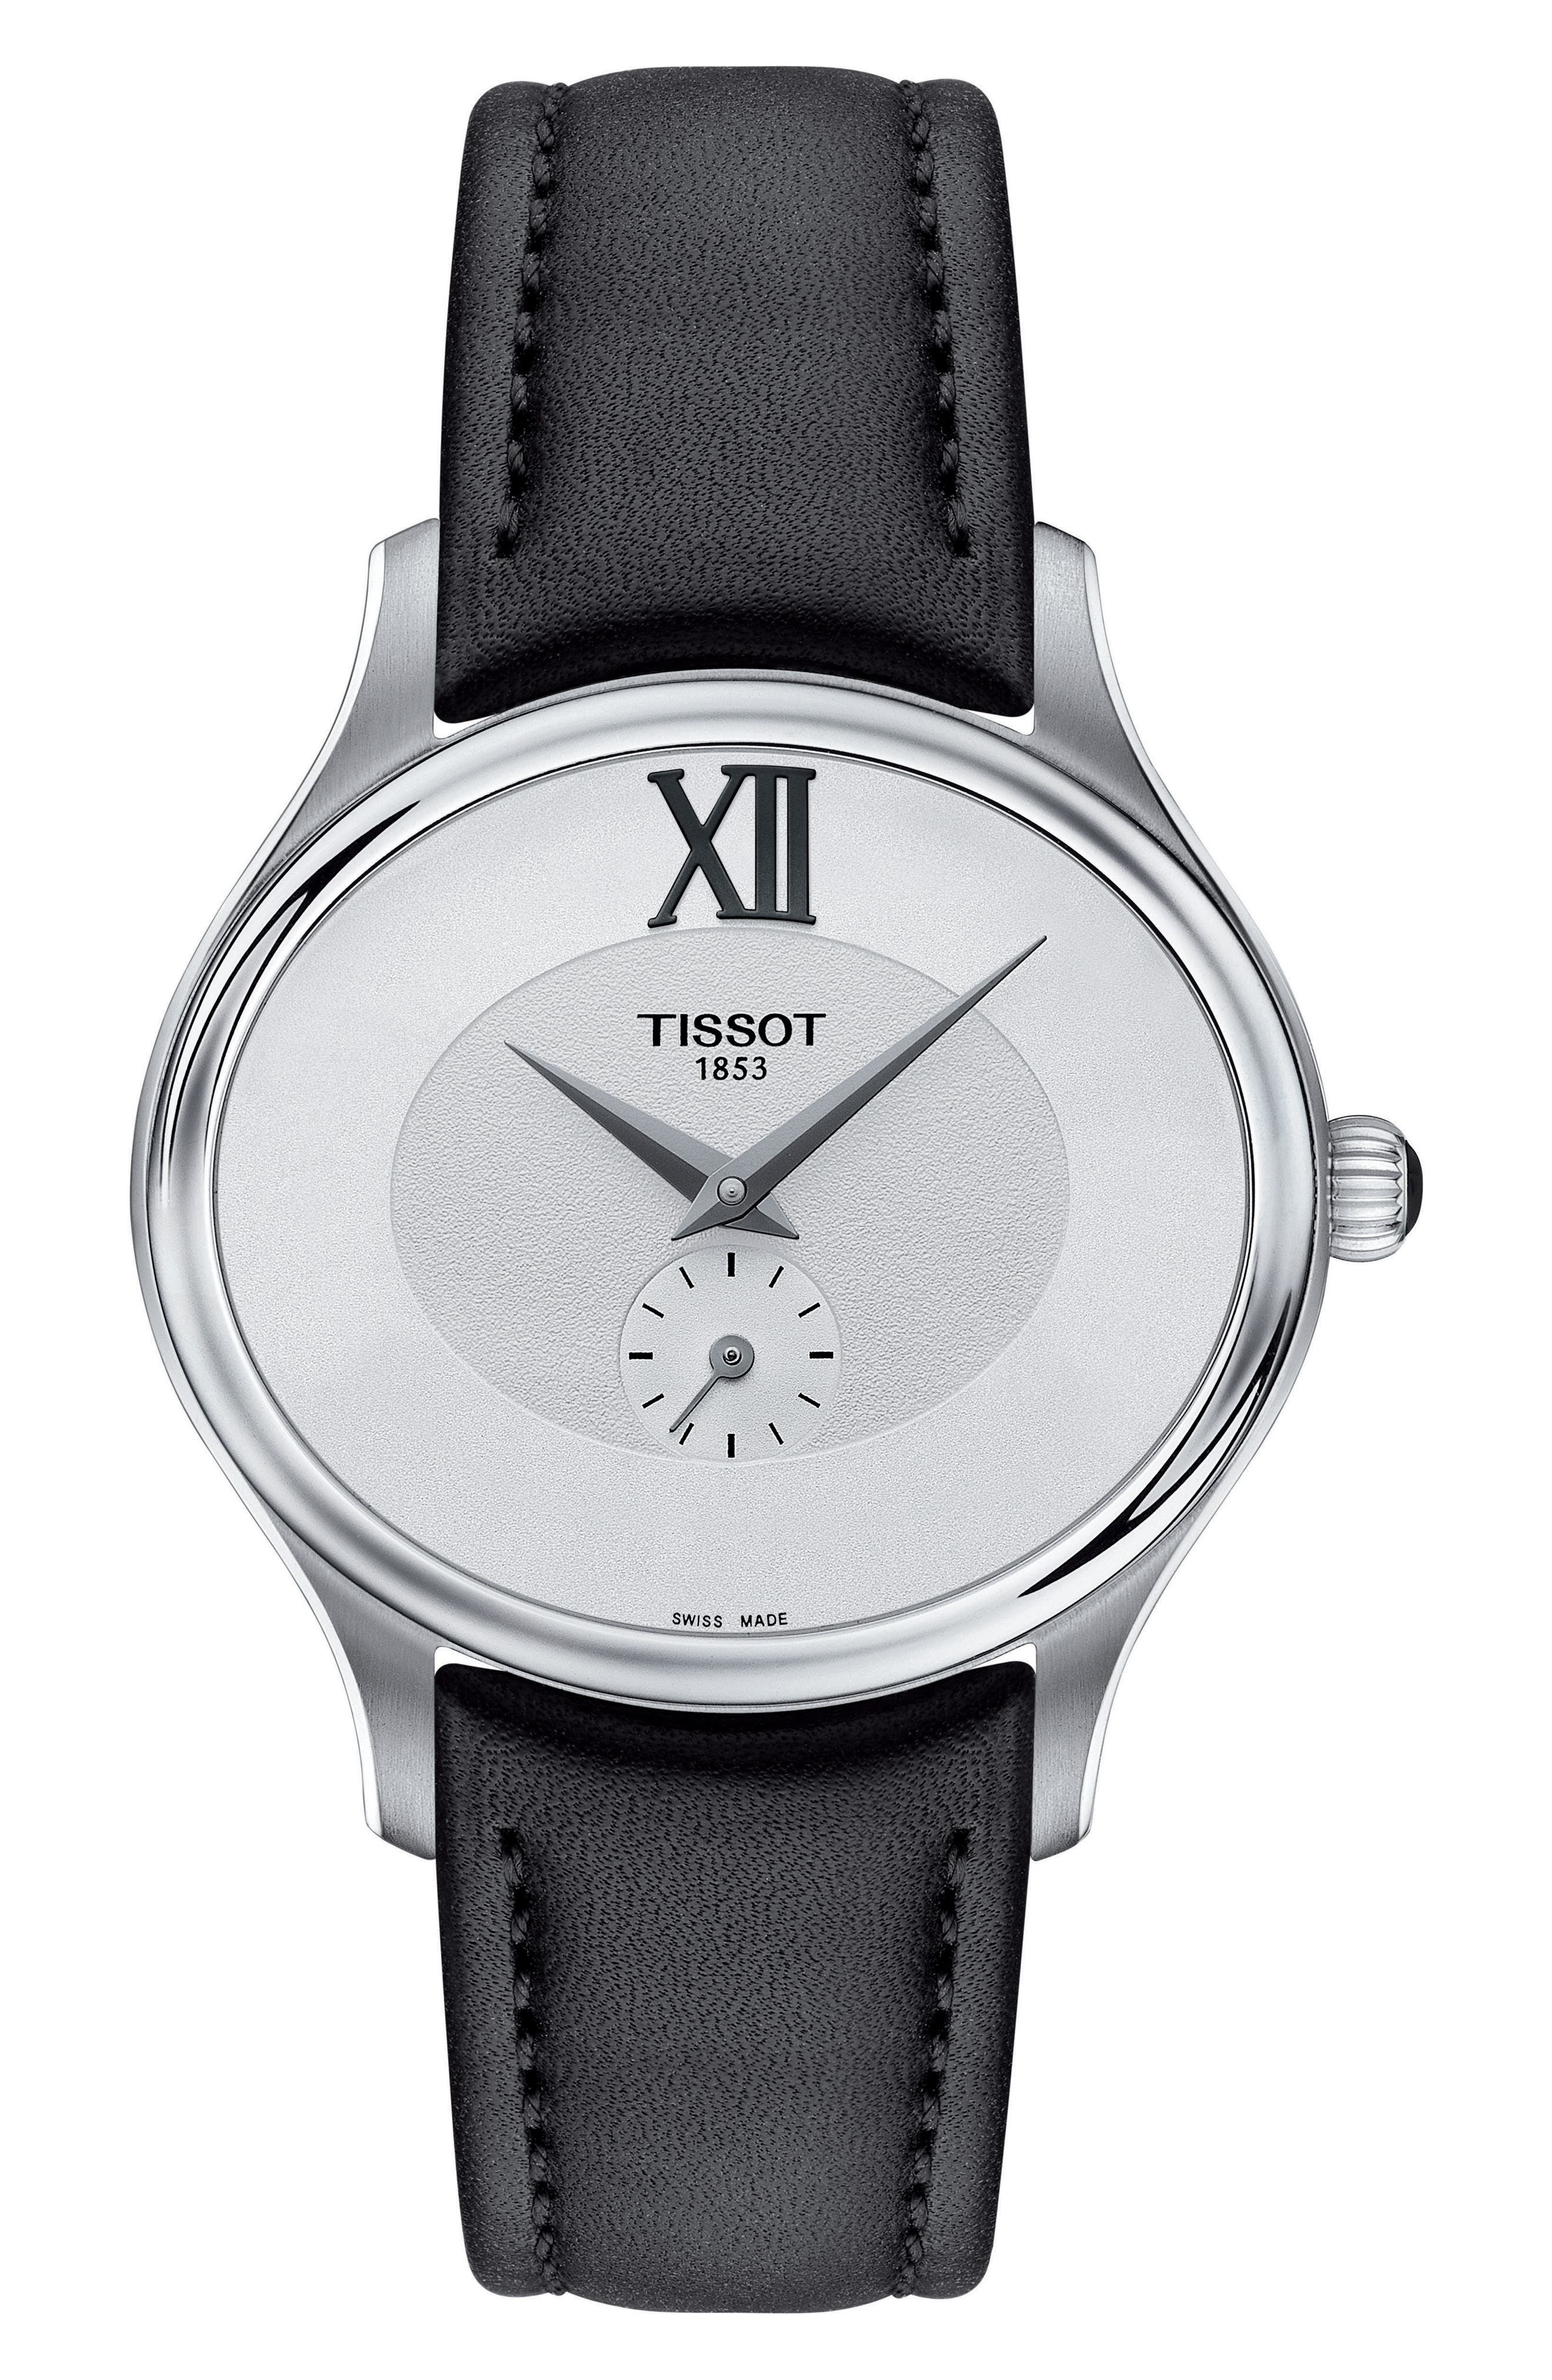 TISSOT Bella Ora Leather Strap Watch, 28mm